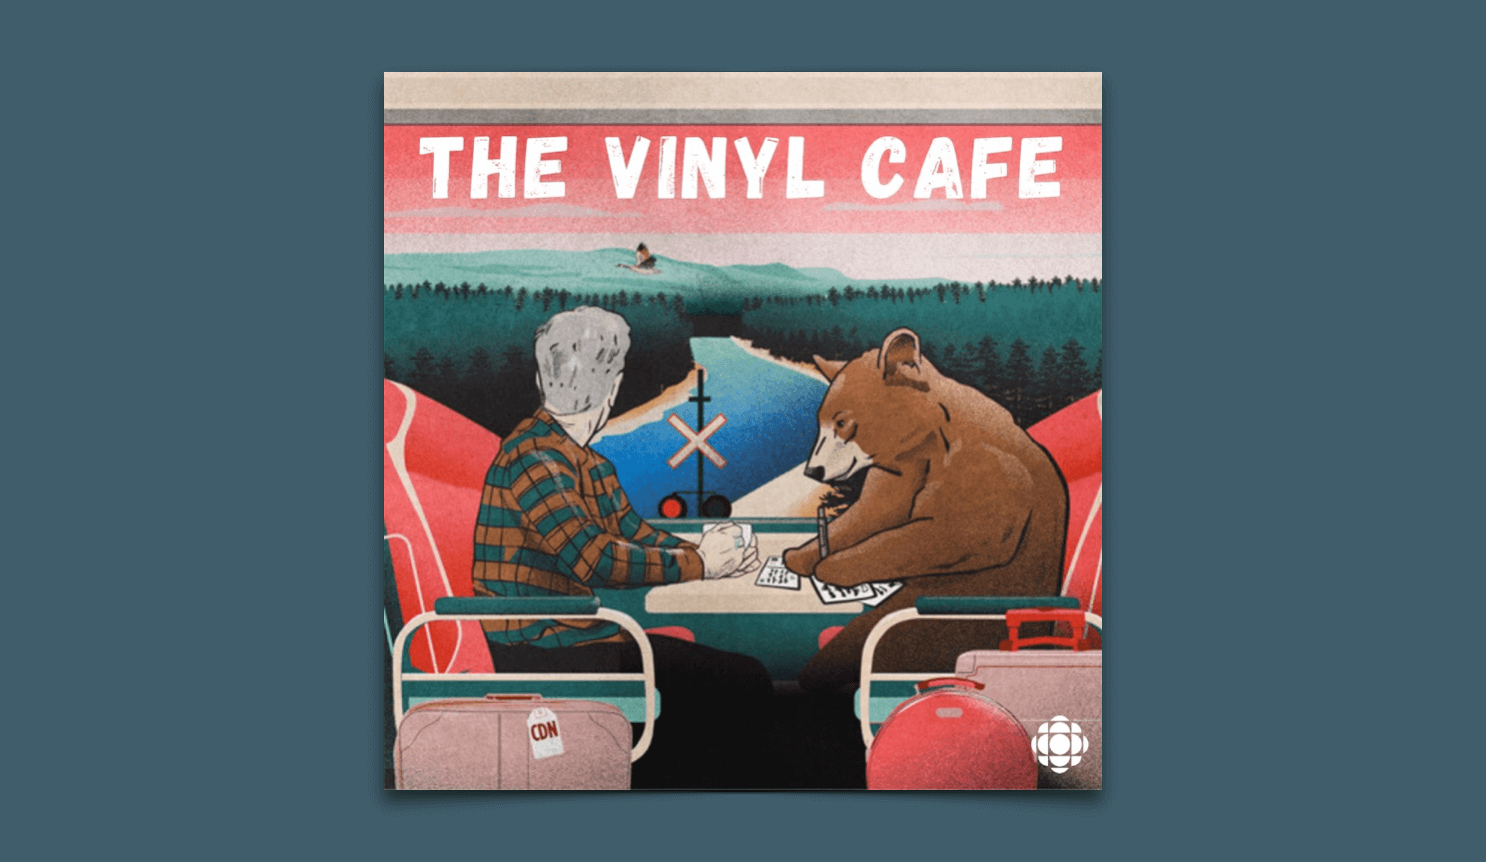 The Vinyl Cafe